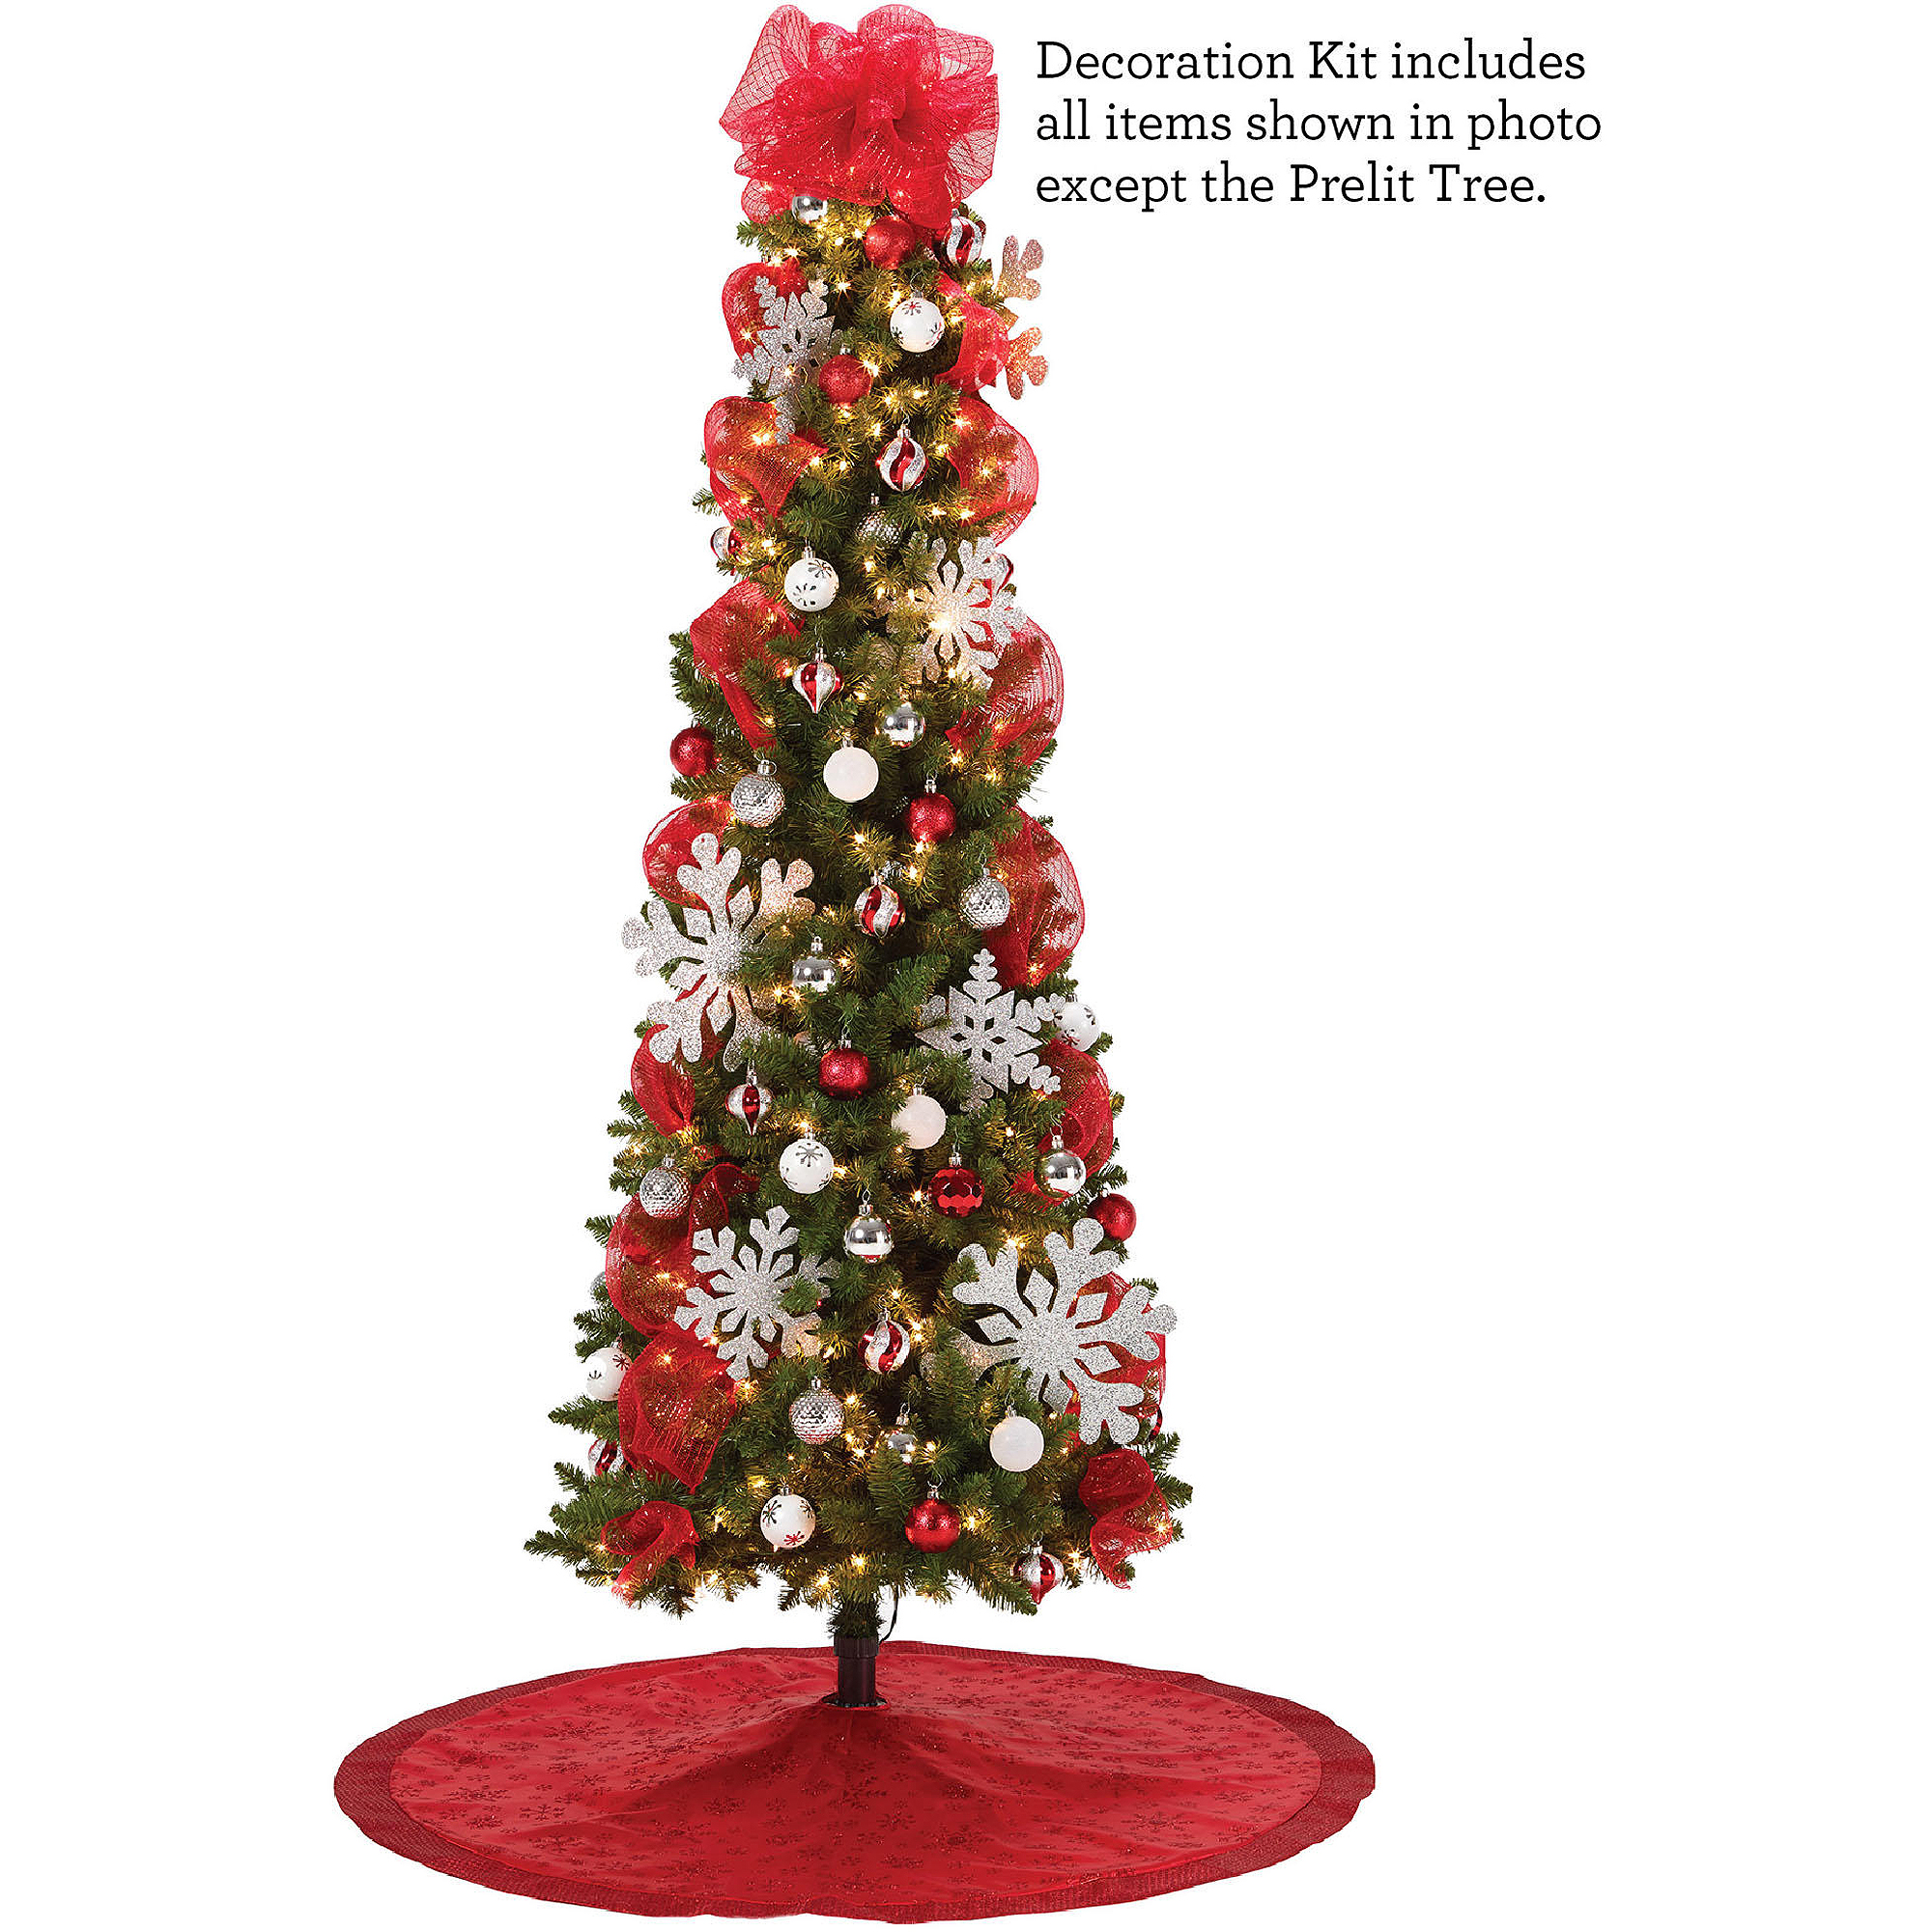 red and silver christmas tree decoration kit walmartcom